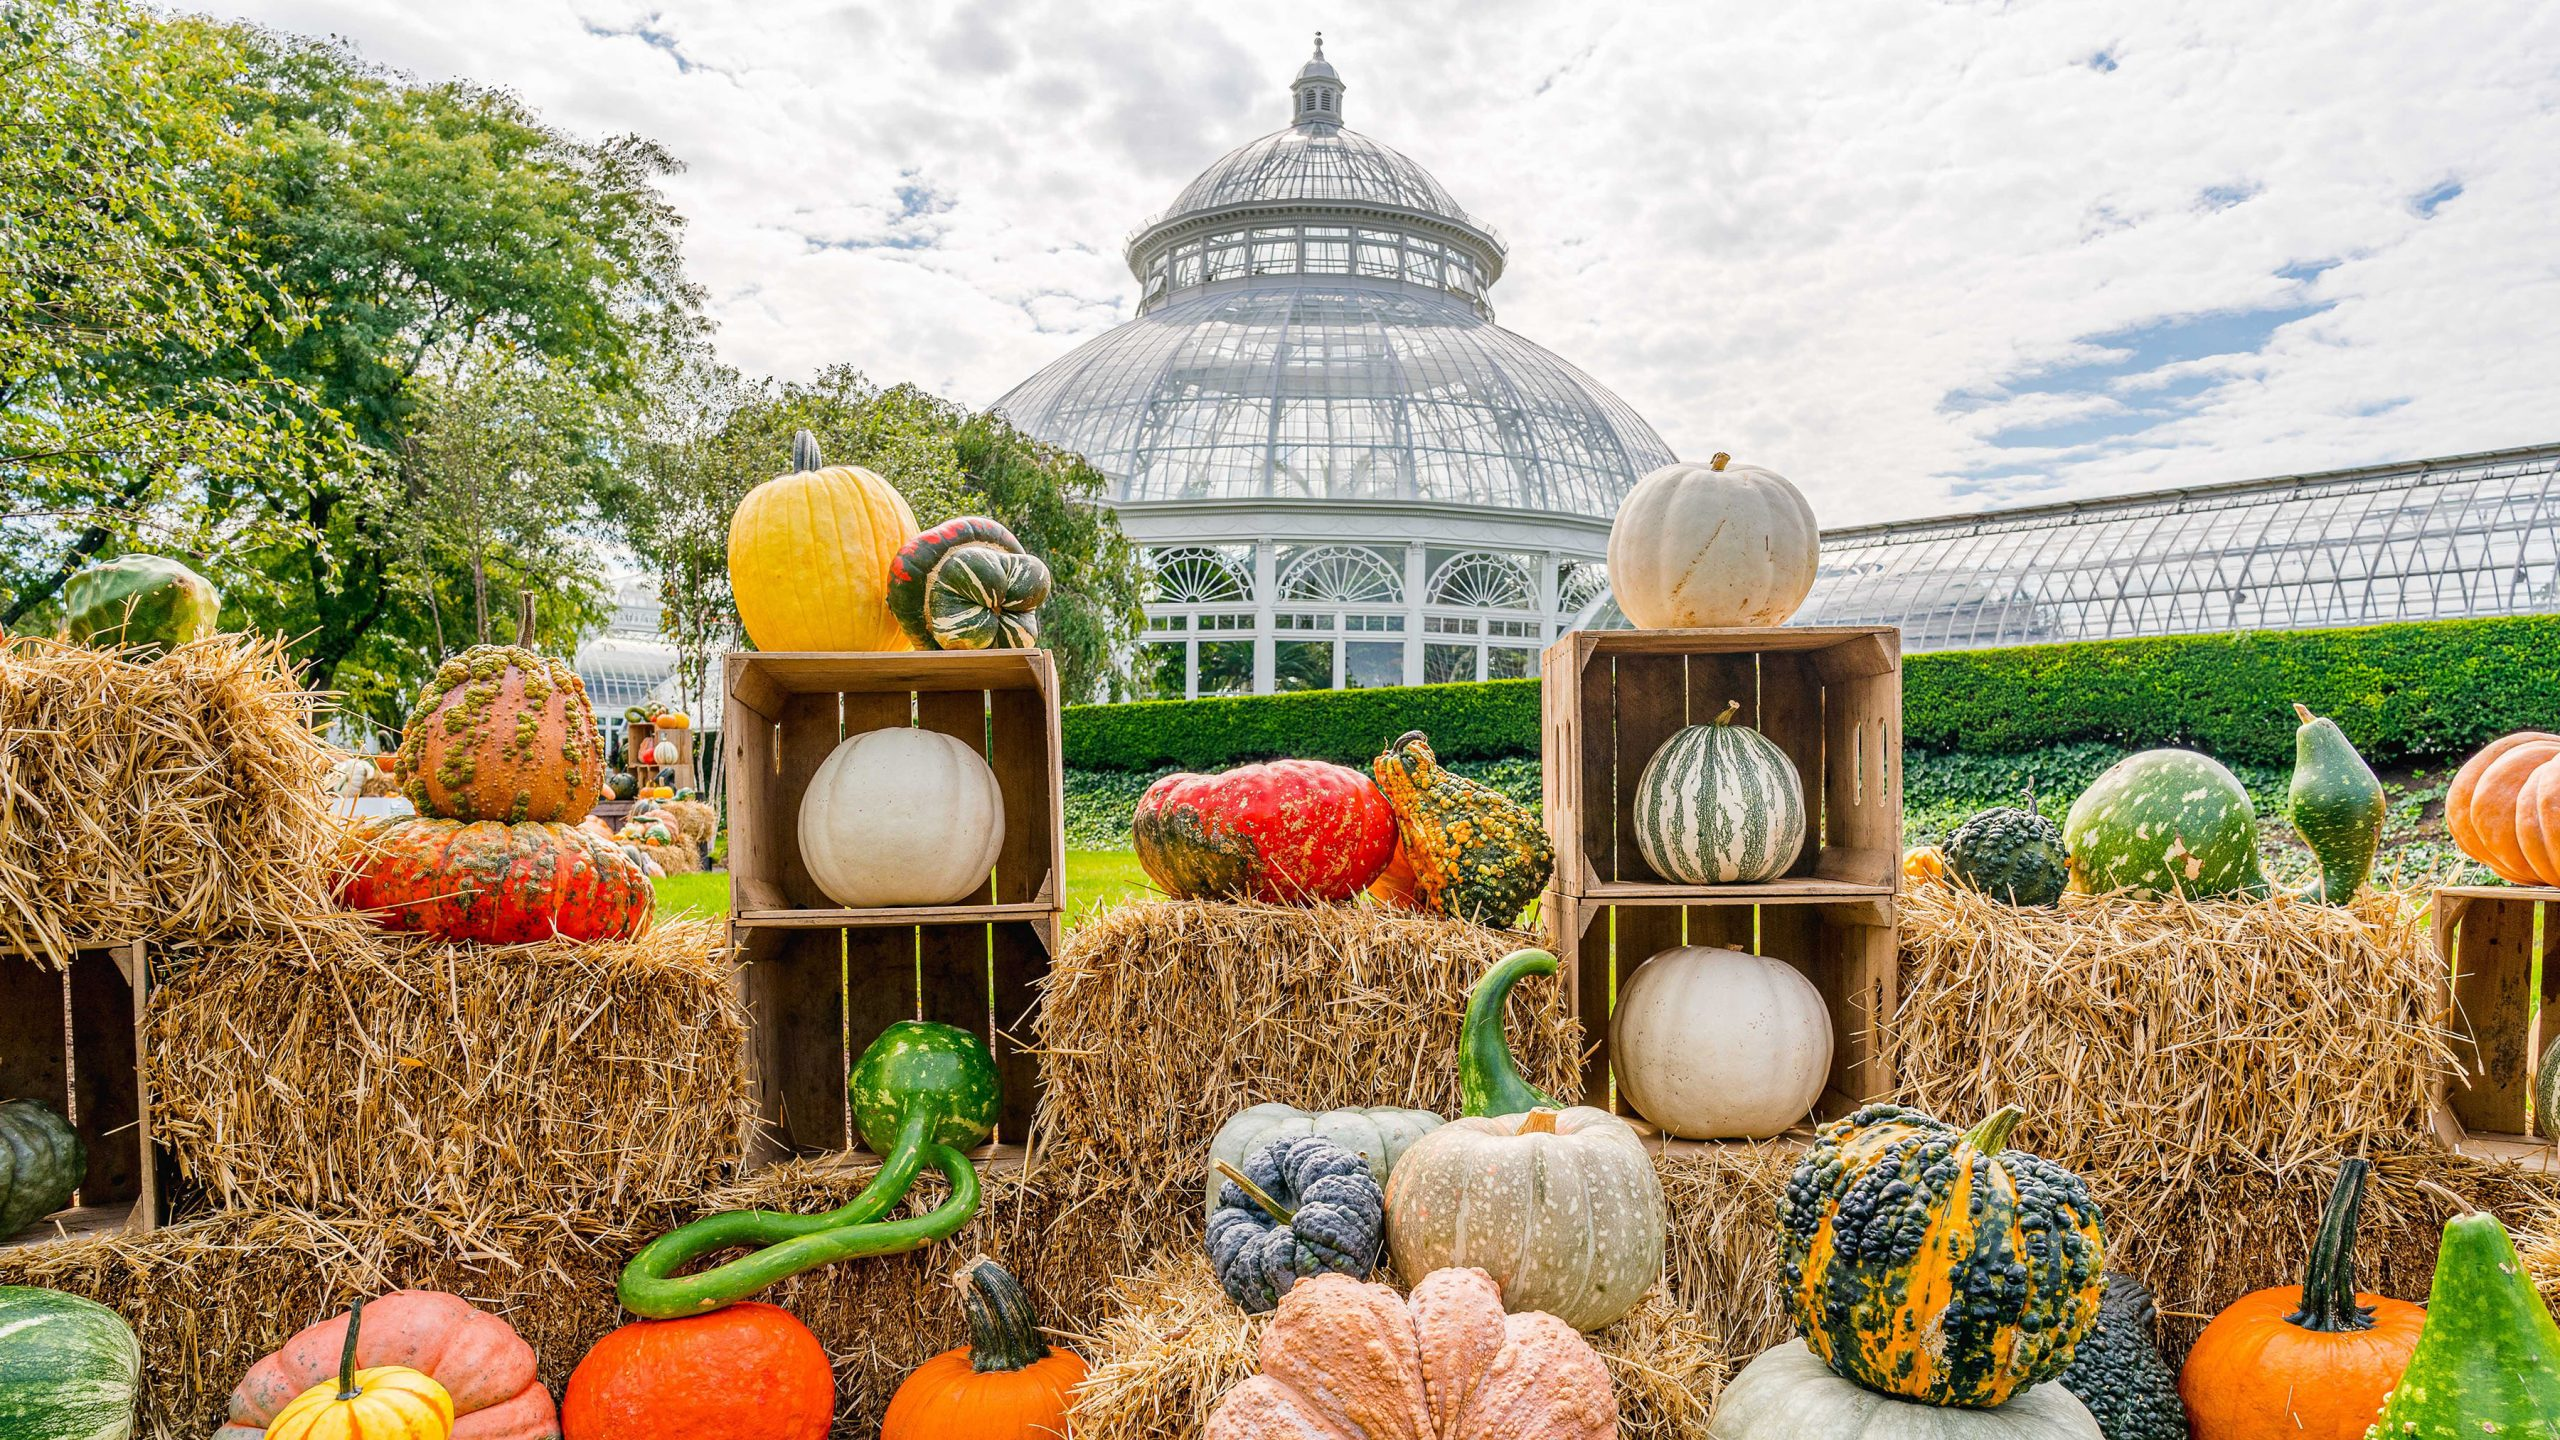 An array of pumpkins and gourds on hay bales and wooden boxes in frontn of the Enid A. Haupt Conservatory's dome